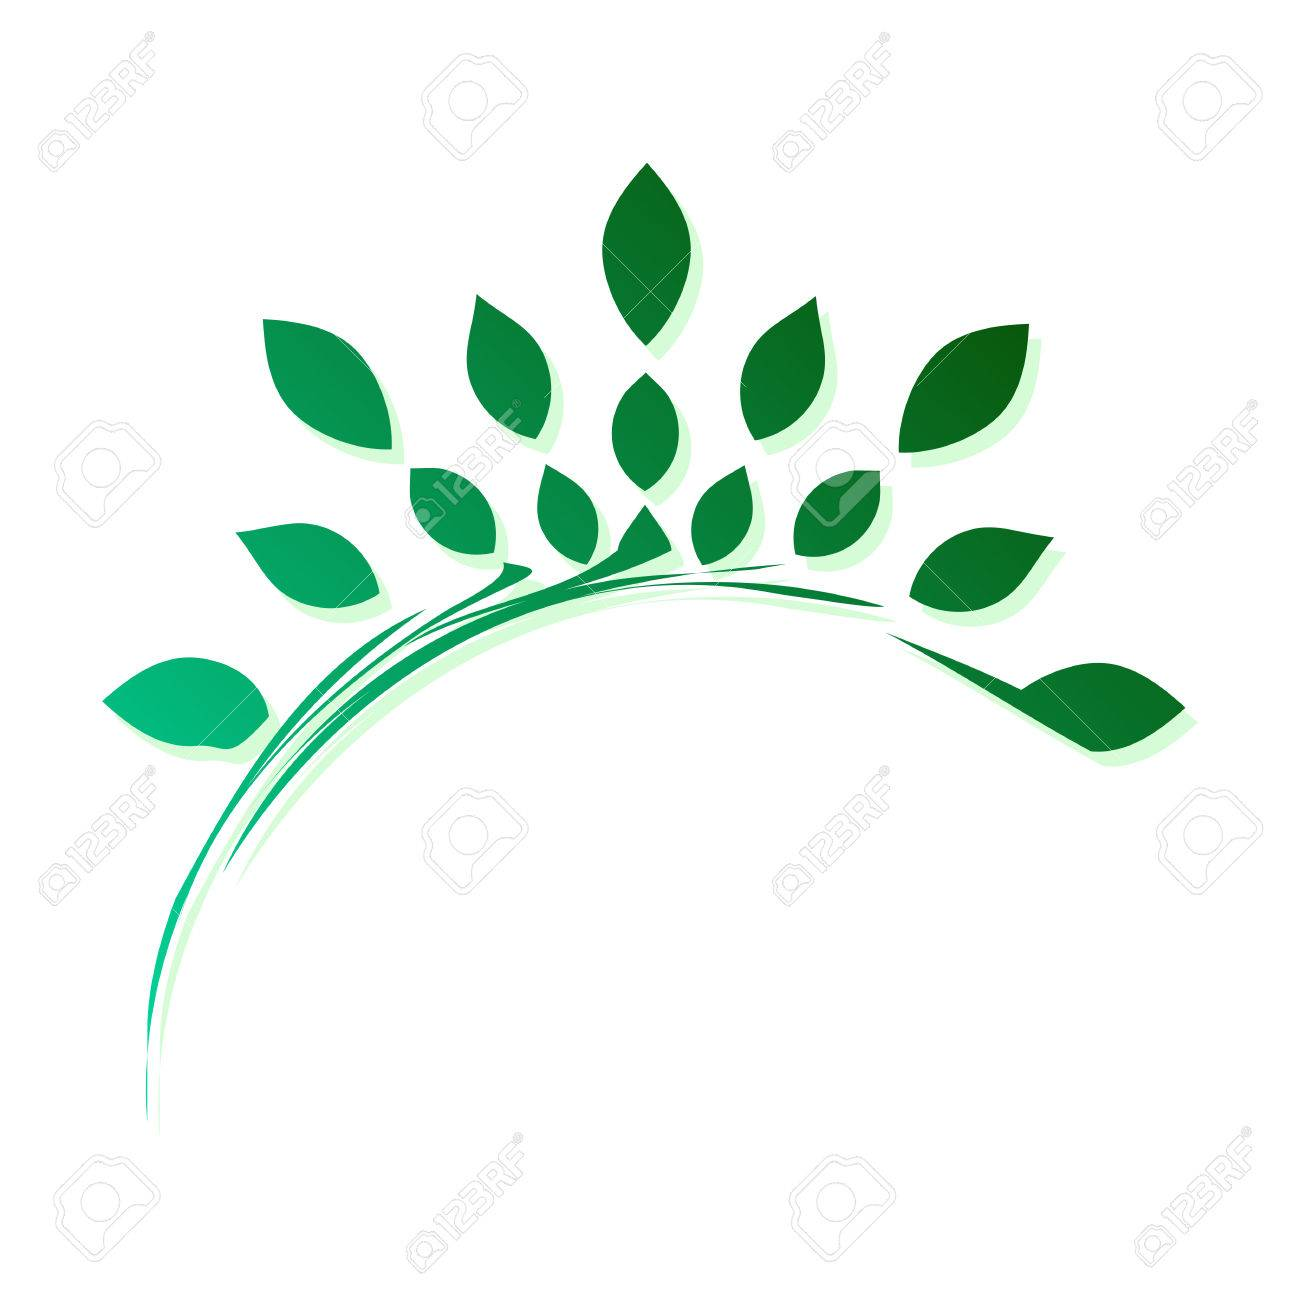 Template For Creating A Logo In The Form Of A Stylized Branch ...